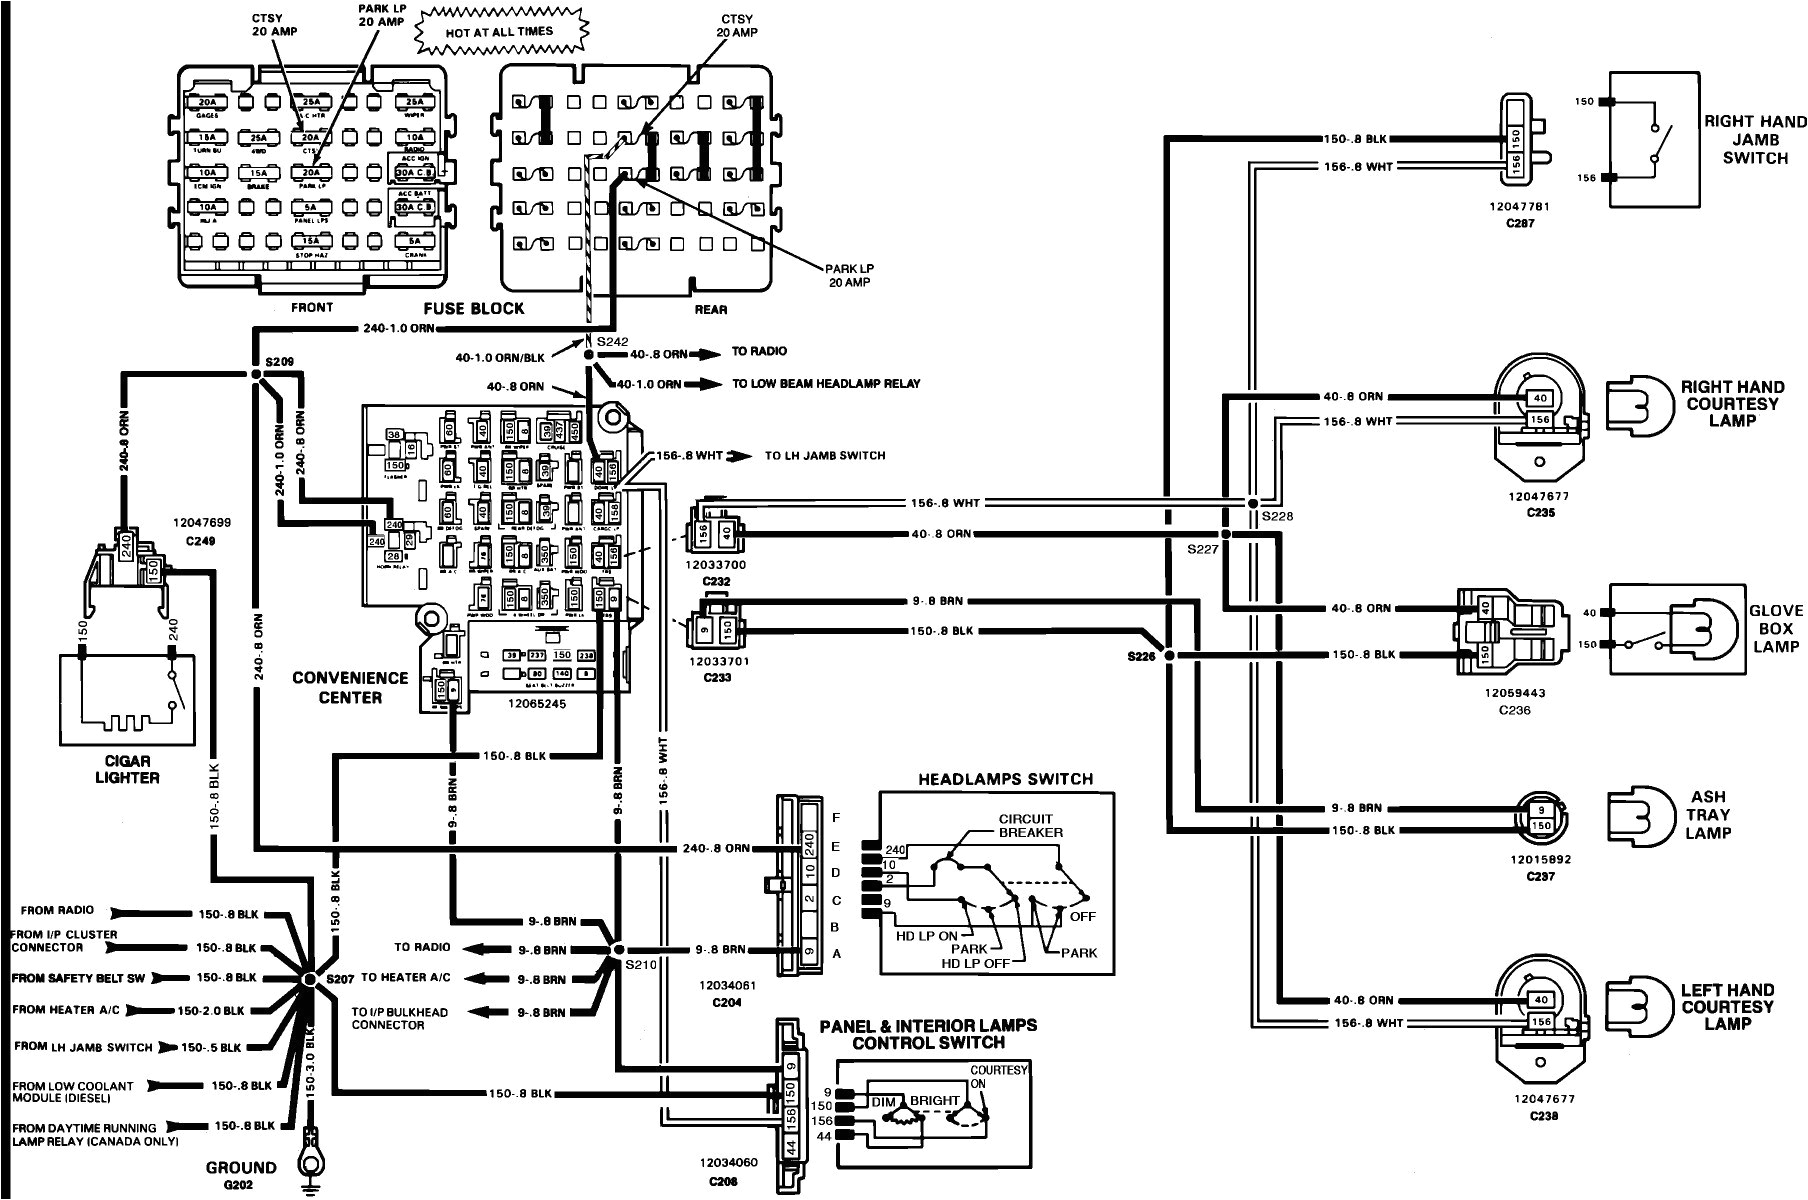 86 chevy headlight wiring diagram wiring diagram automotive diagrams archives page 159 of 301 automotive wiring